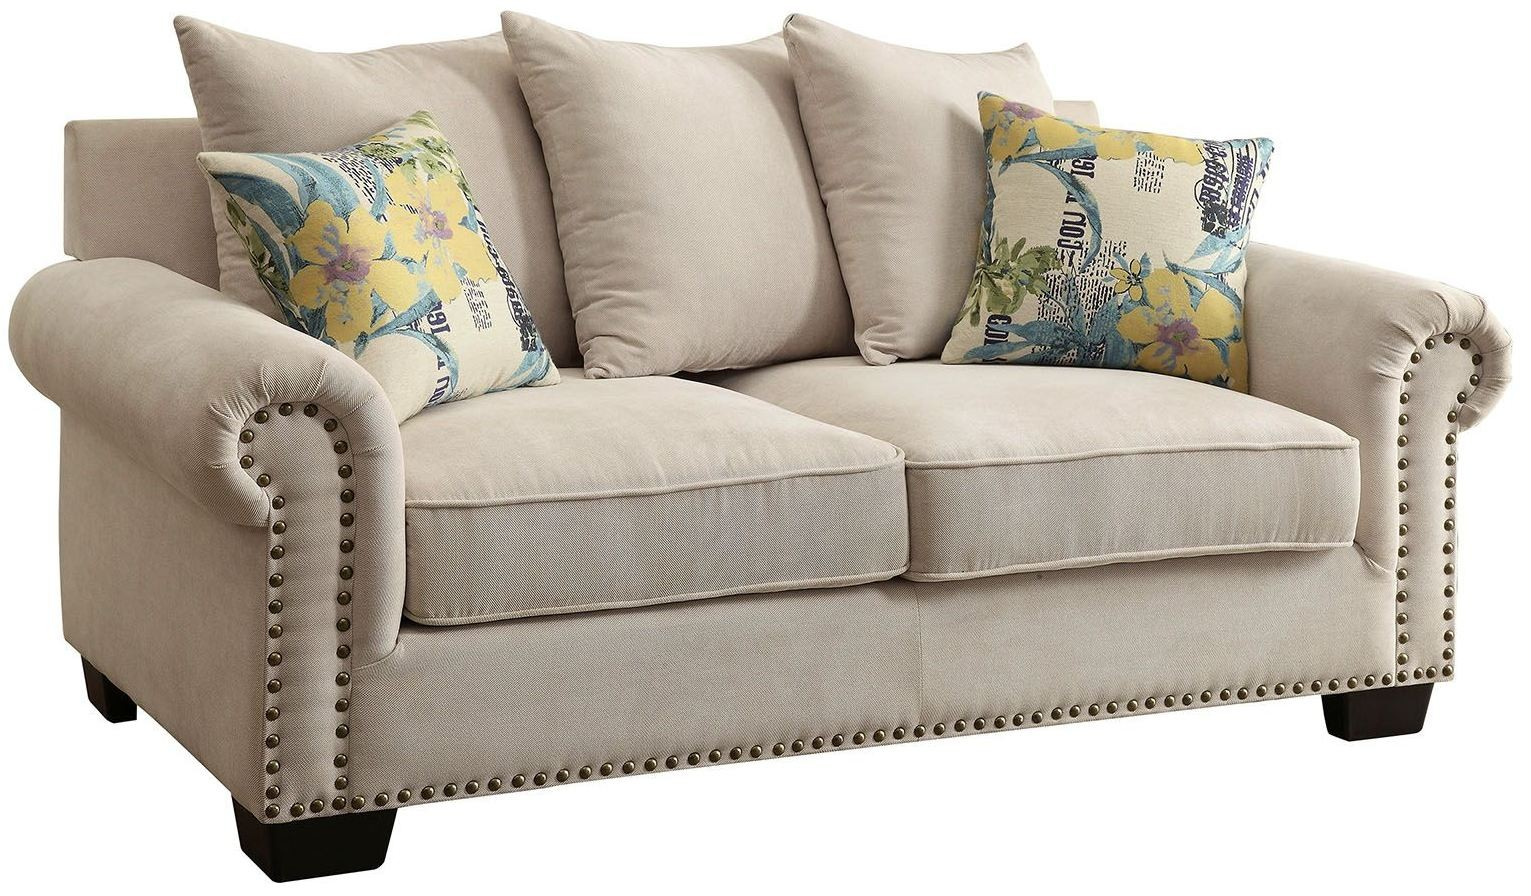 Skyler Ivory Loveseat From Furniture Of America Coleman Furniture